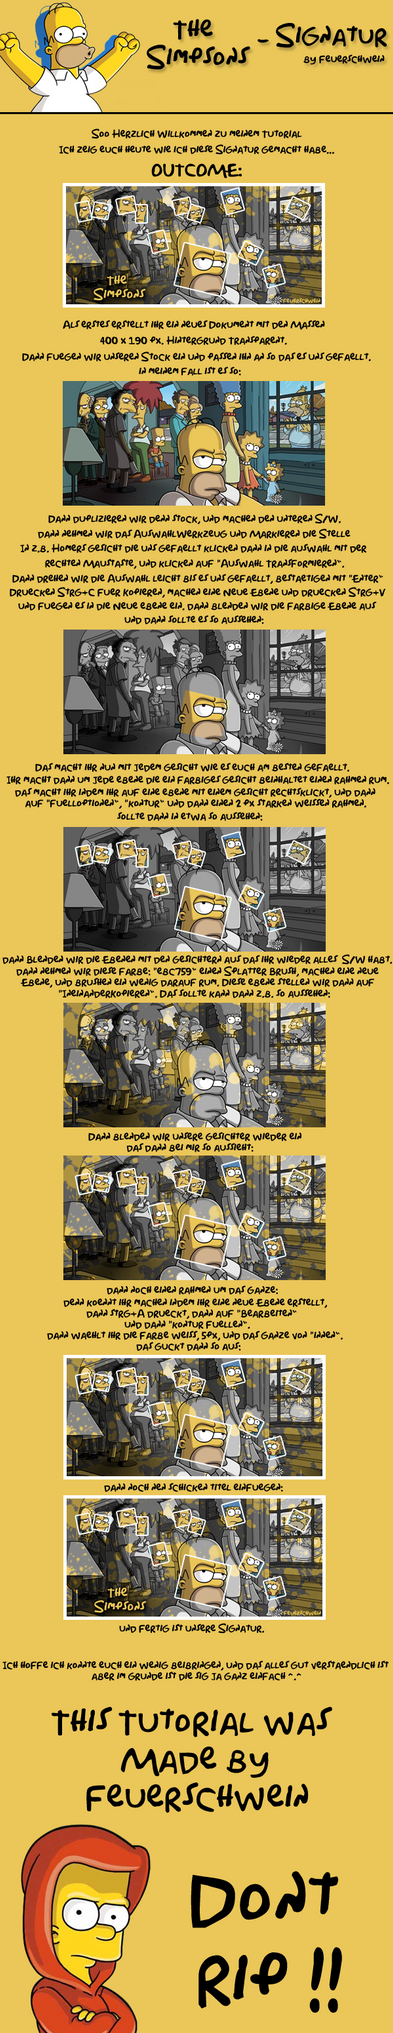 The Simpsons - Tutorial by Feuerschwein